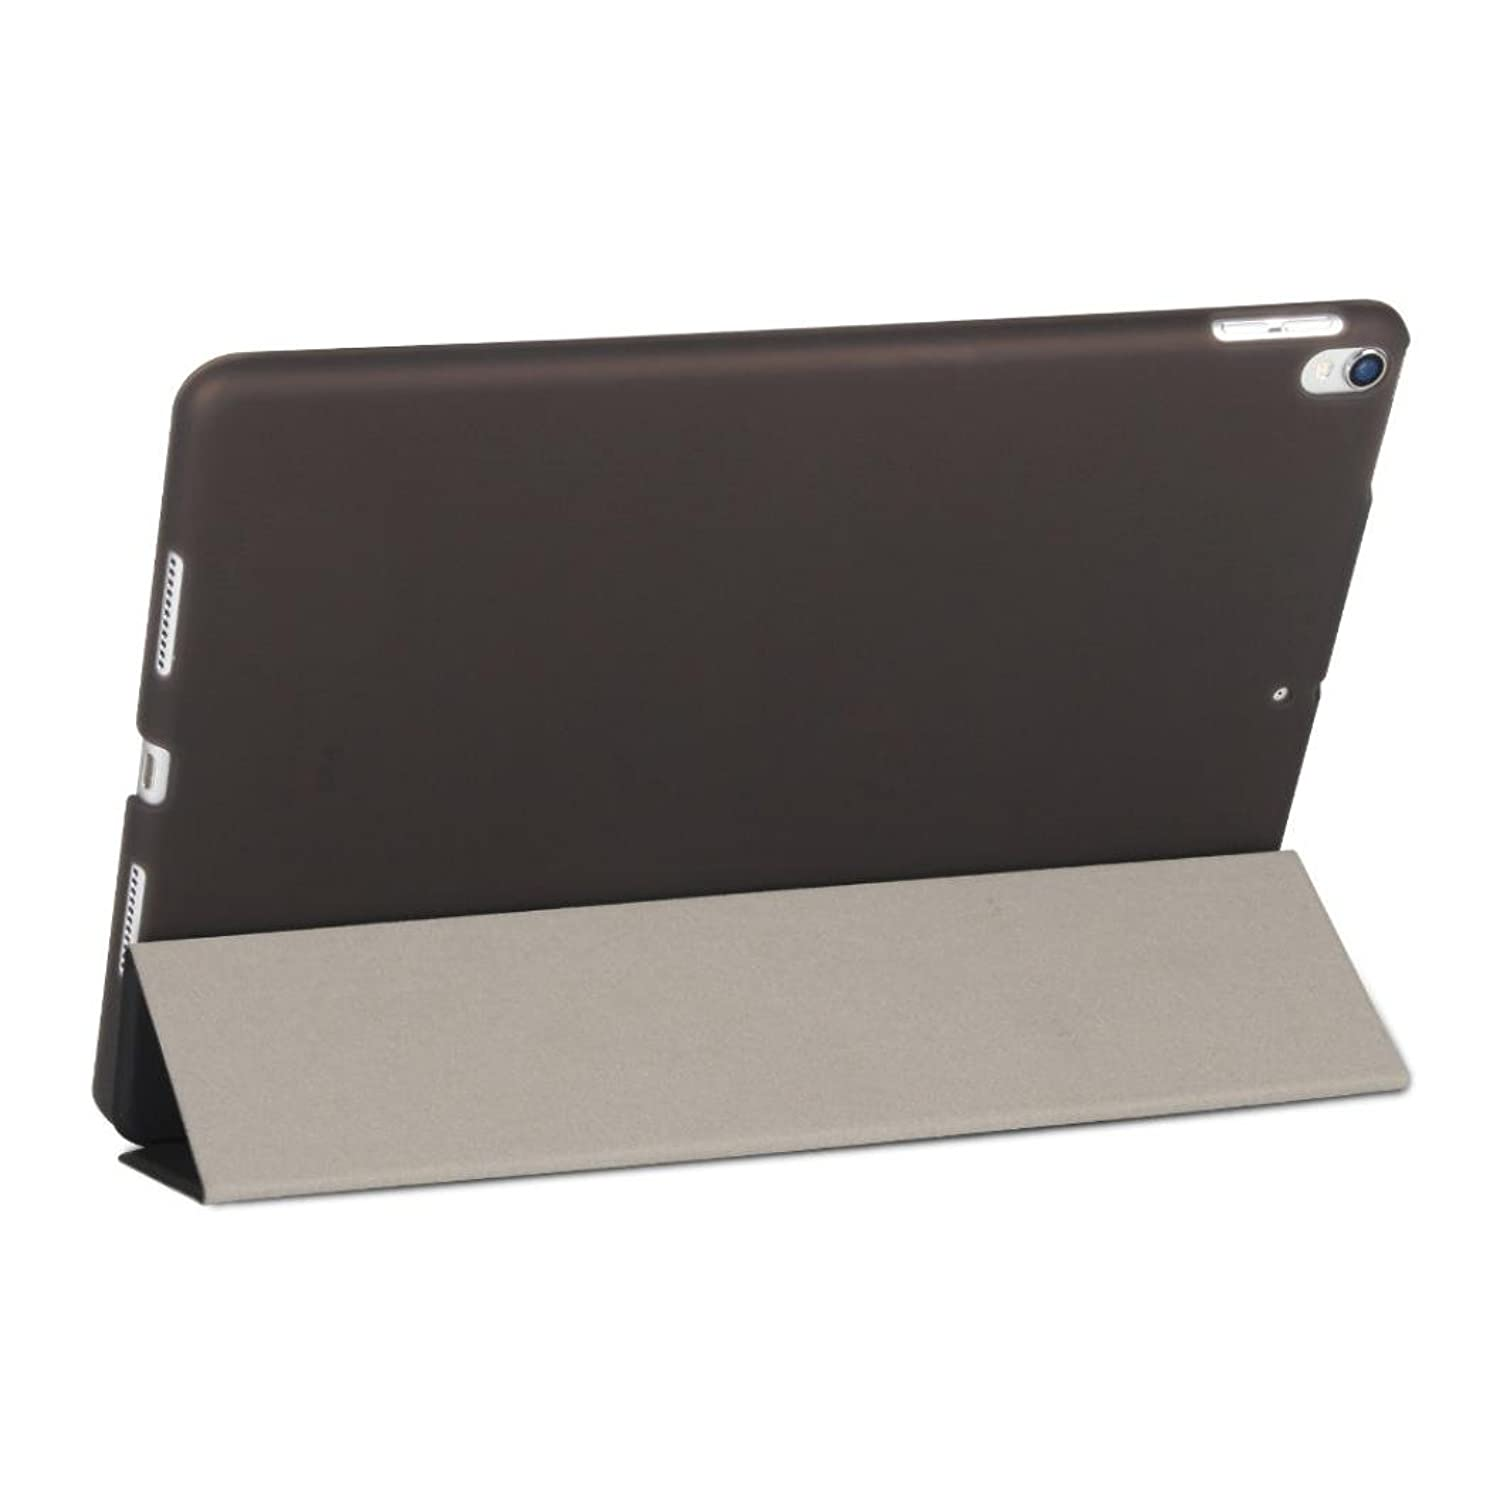 Voberry Ultra Slim Shockproof Stand Leather Cover Case For iPad Pro 10.5Inch Tablet PC (Navy) (Black) at Amazon Women's Clothing store